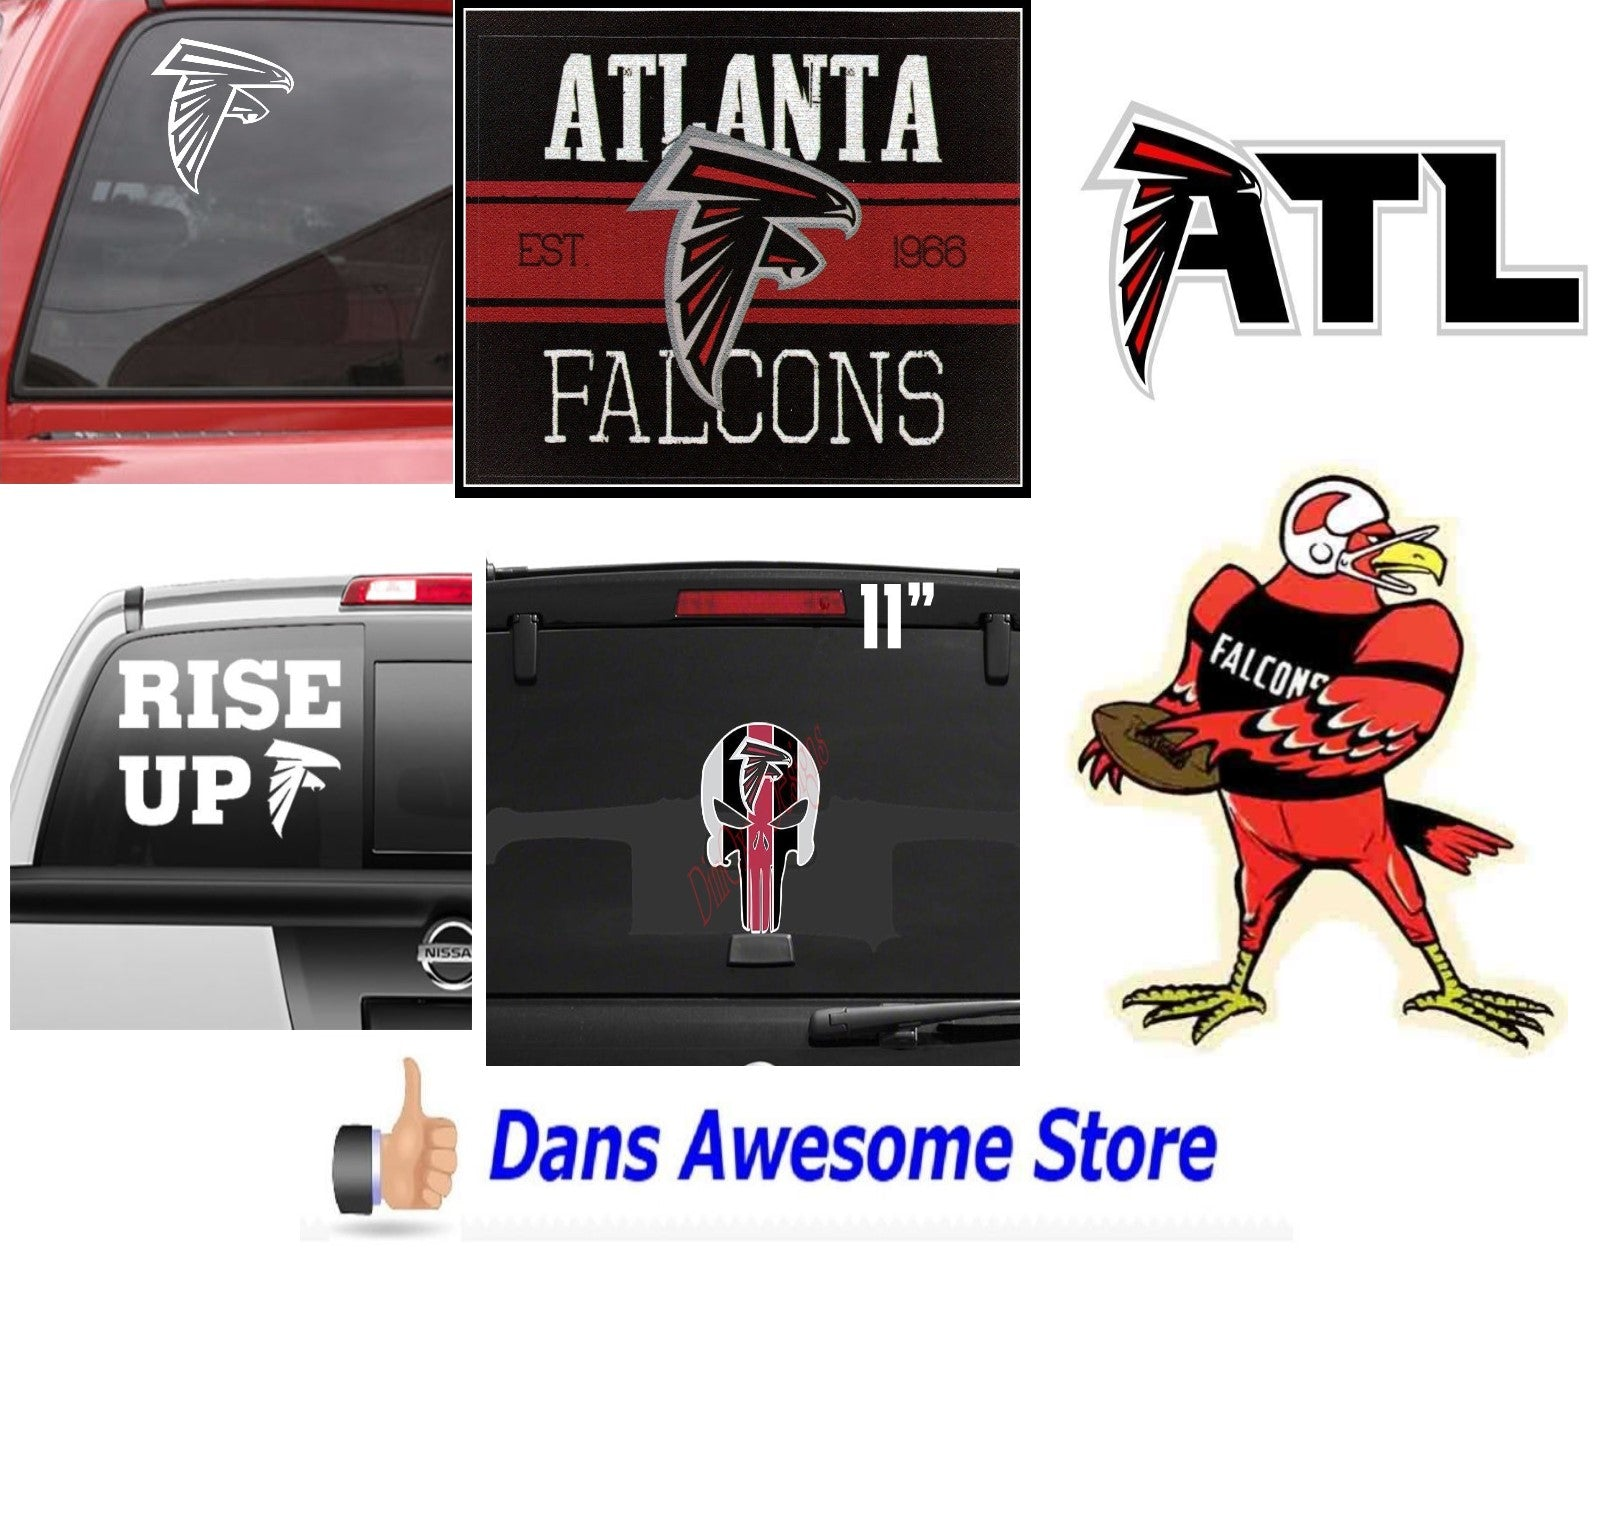 Atlanta Falcons Sticker - Dans Awesome Store